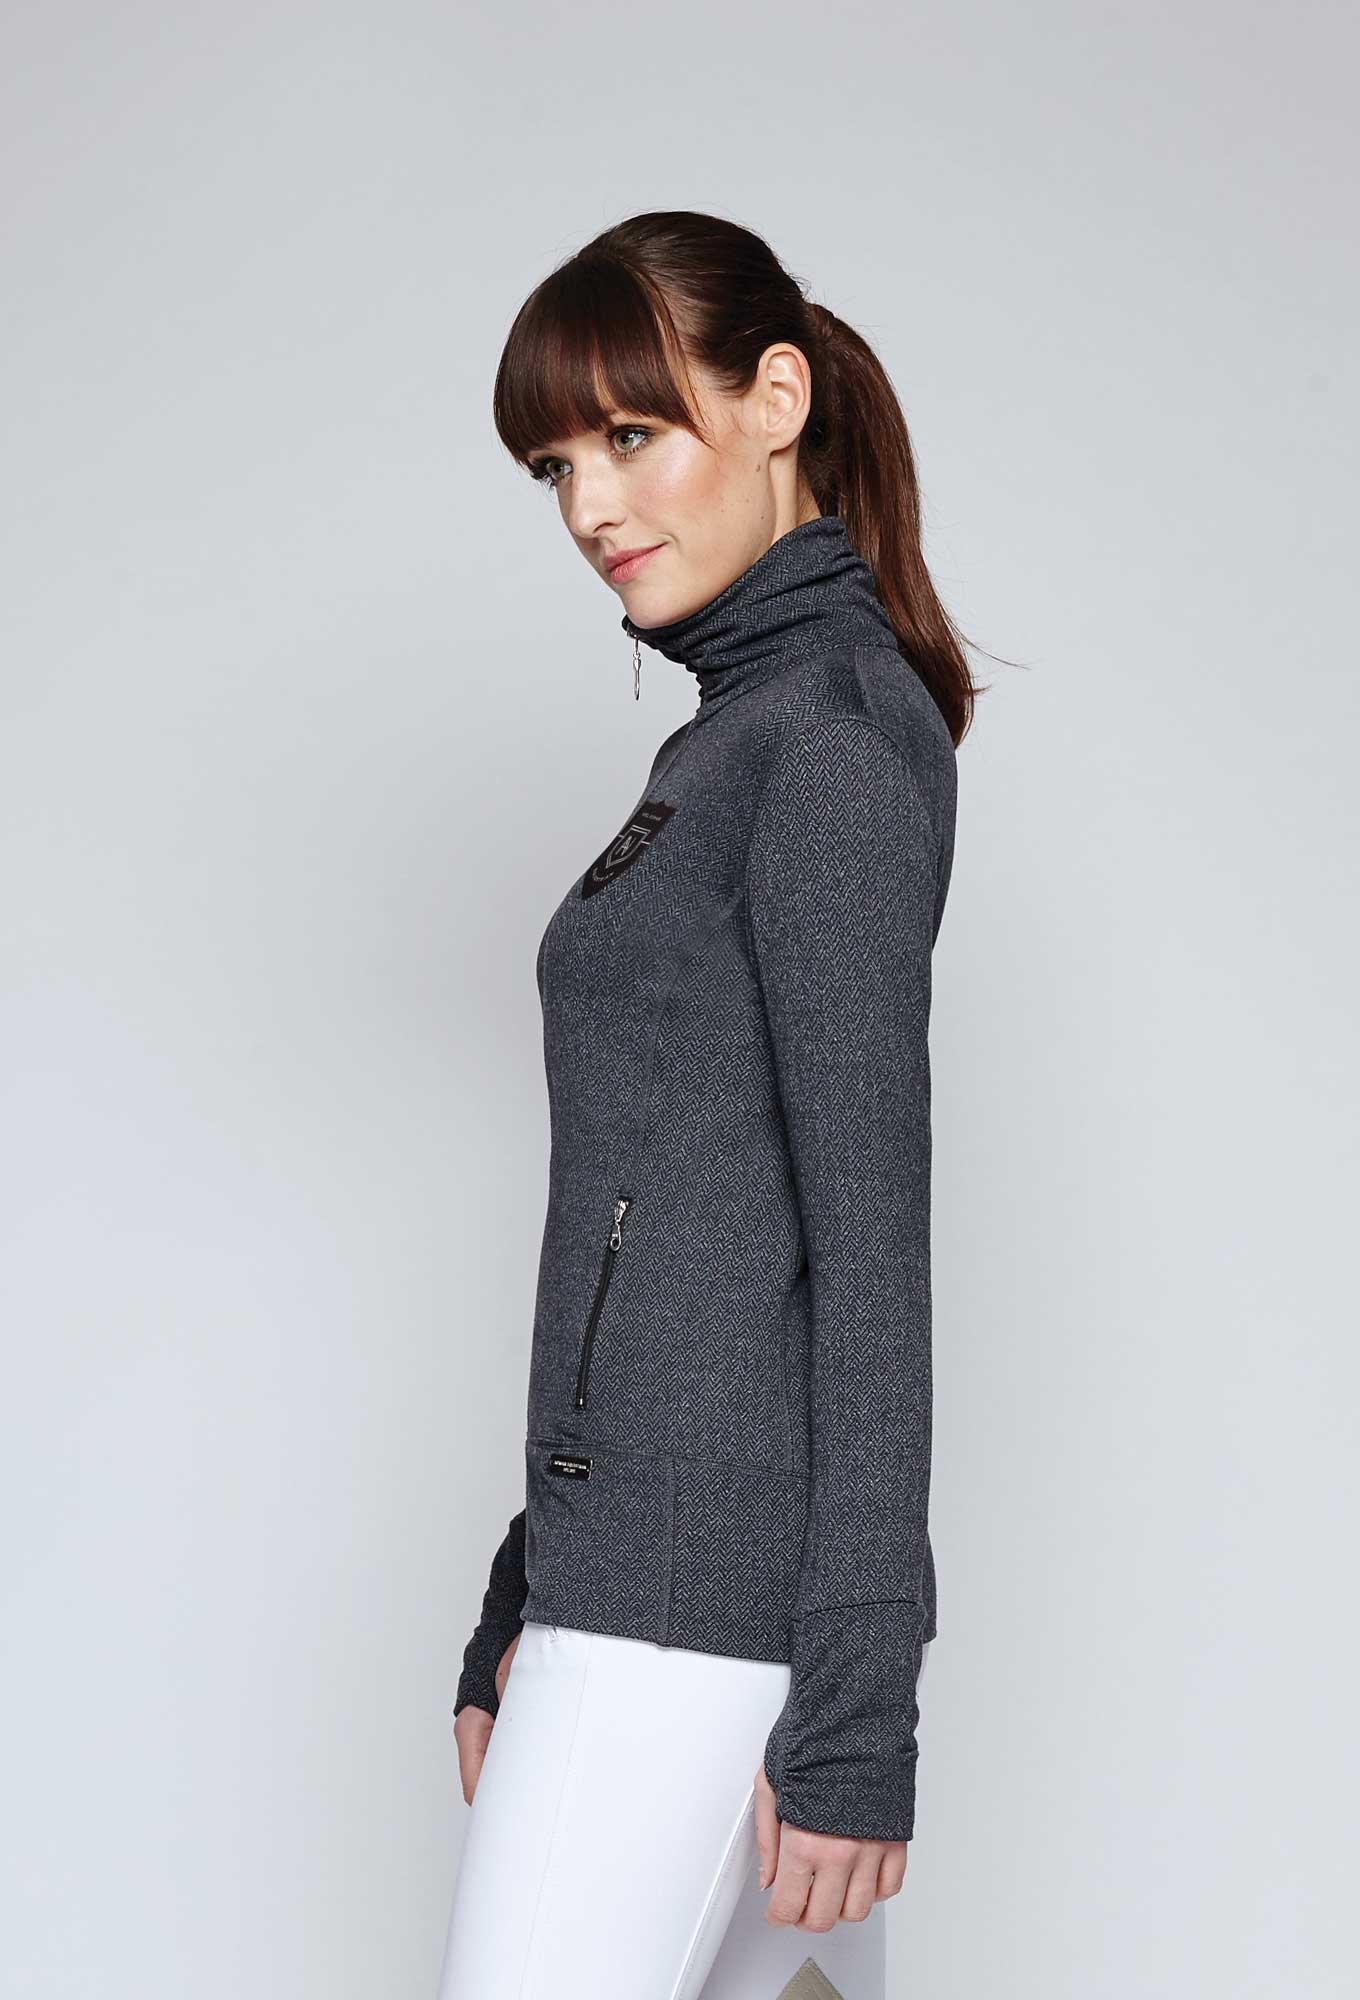 Noel Asmar Hampton Zip Up Jacket - Charcoal side